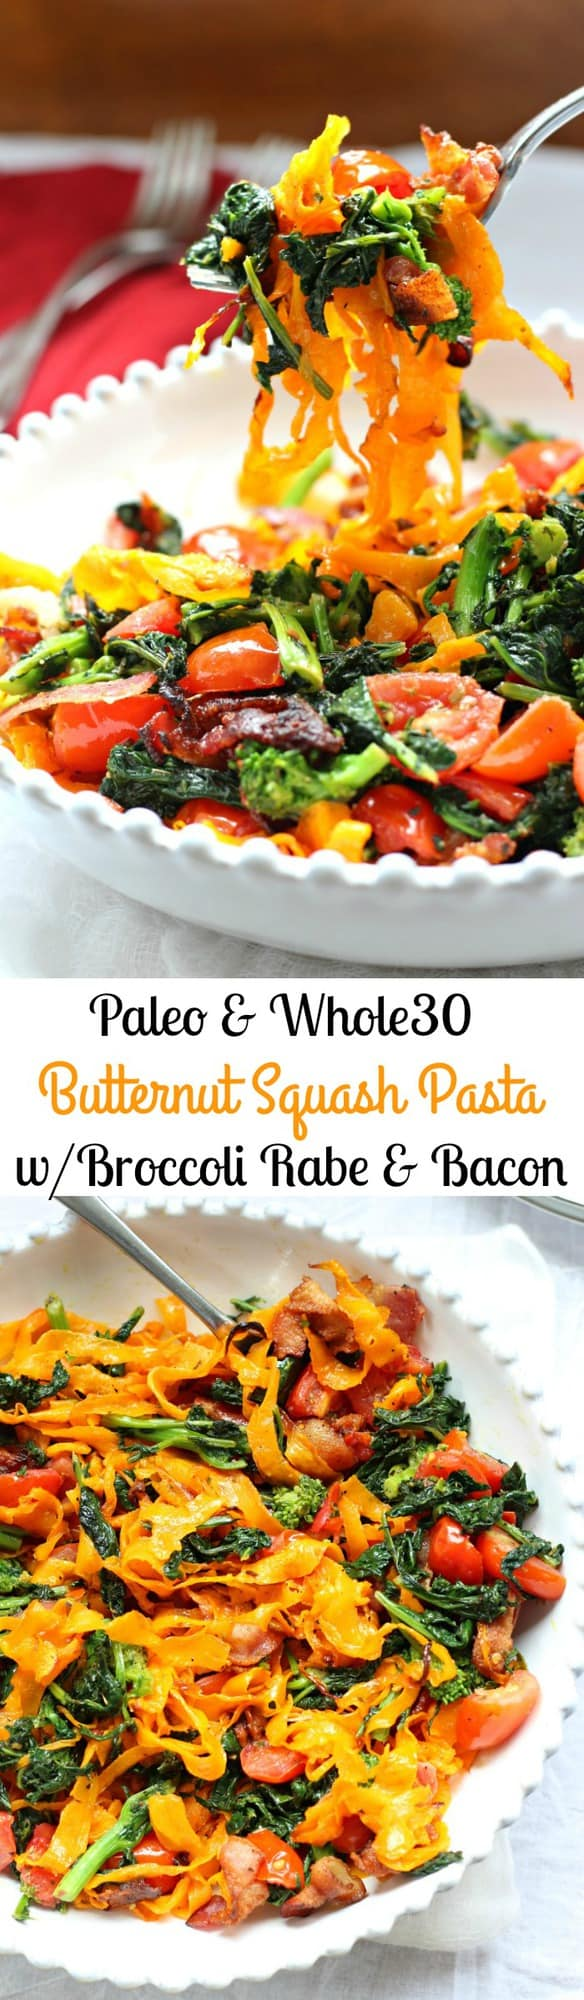 Paleo Butternut Squash Pasta with Broccoli Rabe, Bacon, and Tomatoes ...